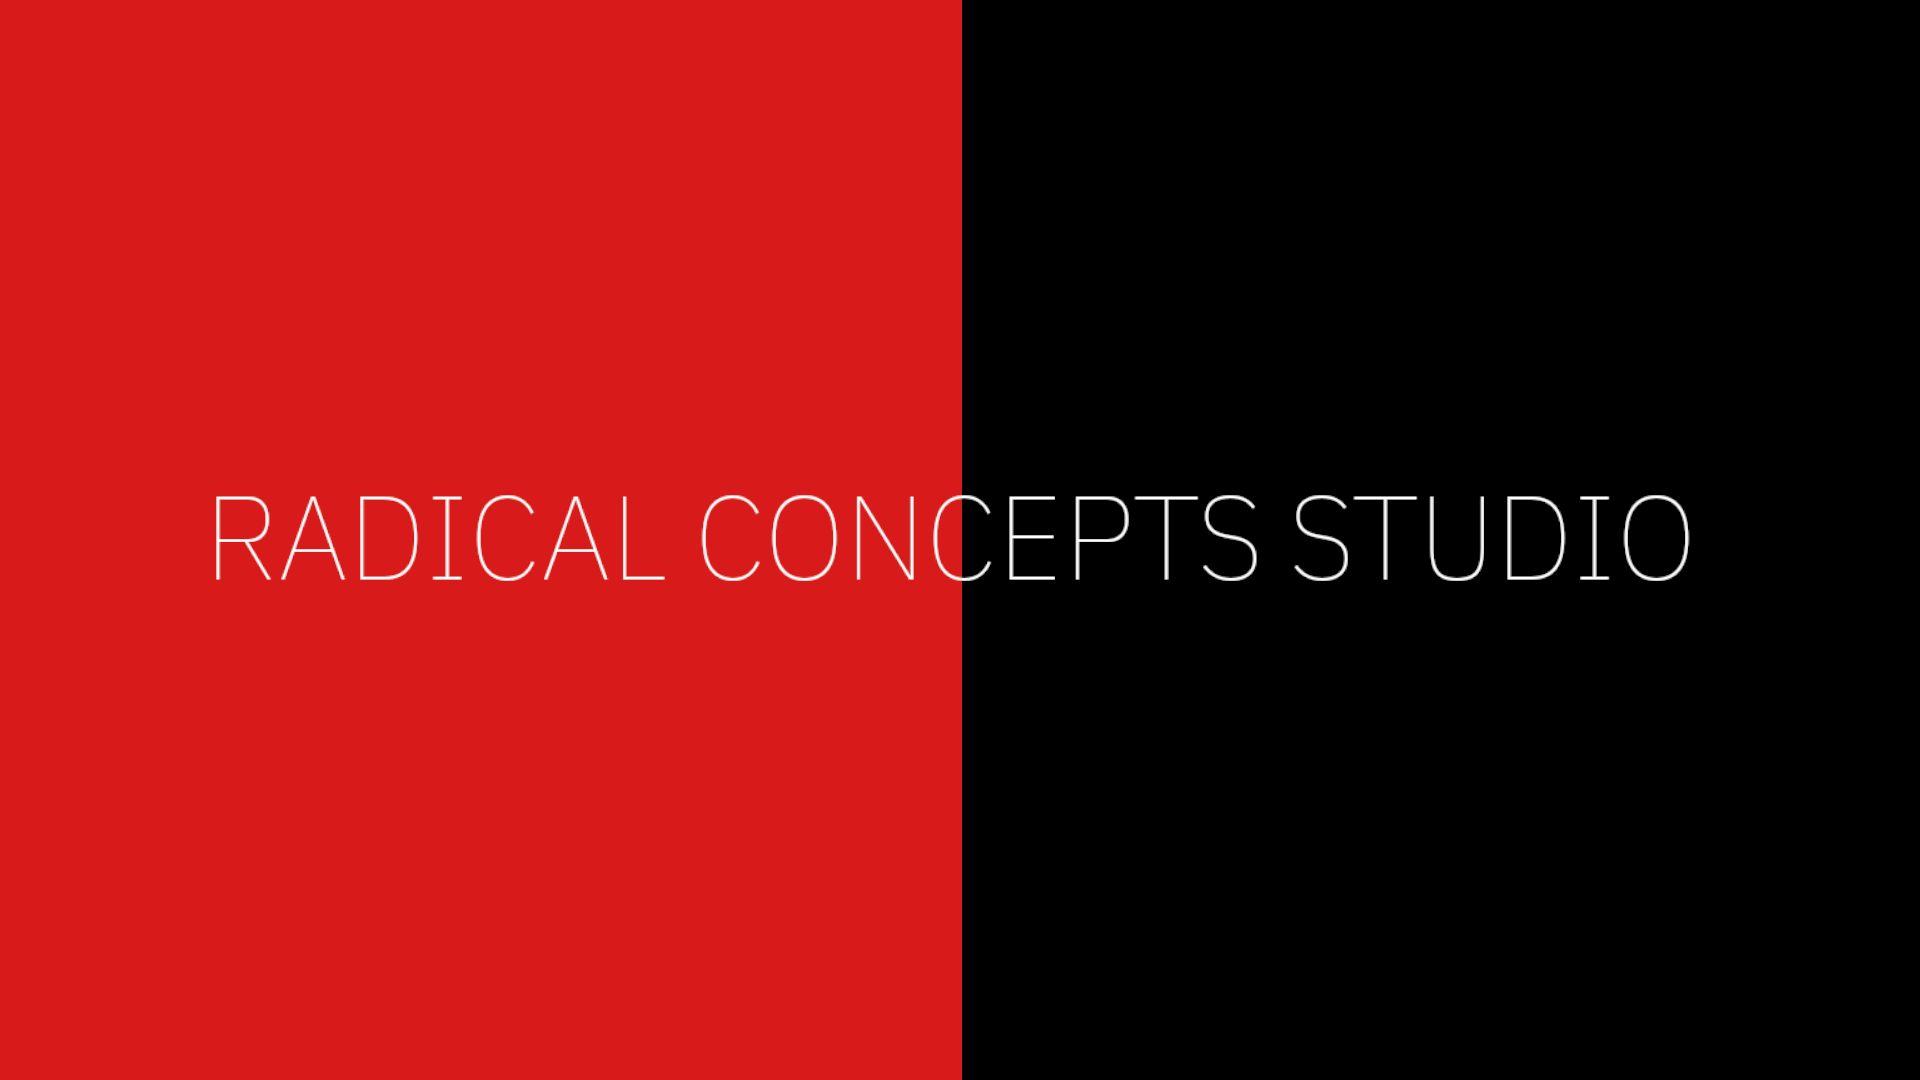 Radical Concepts Studio